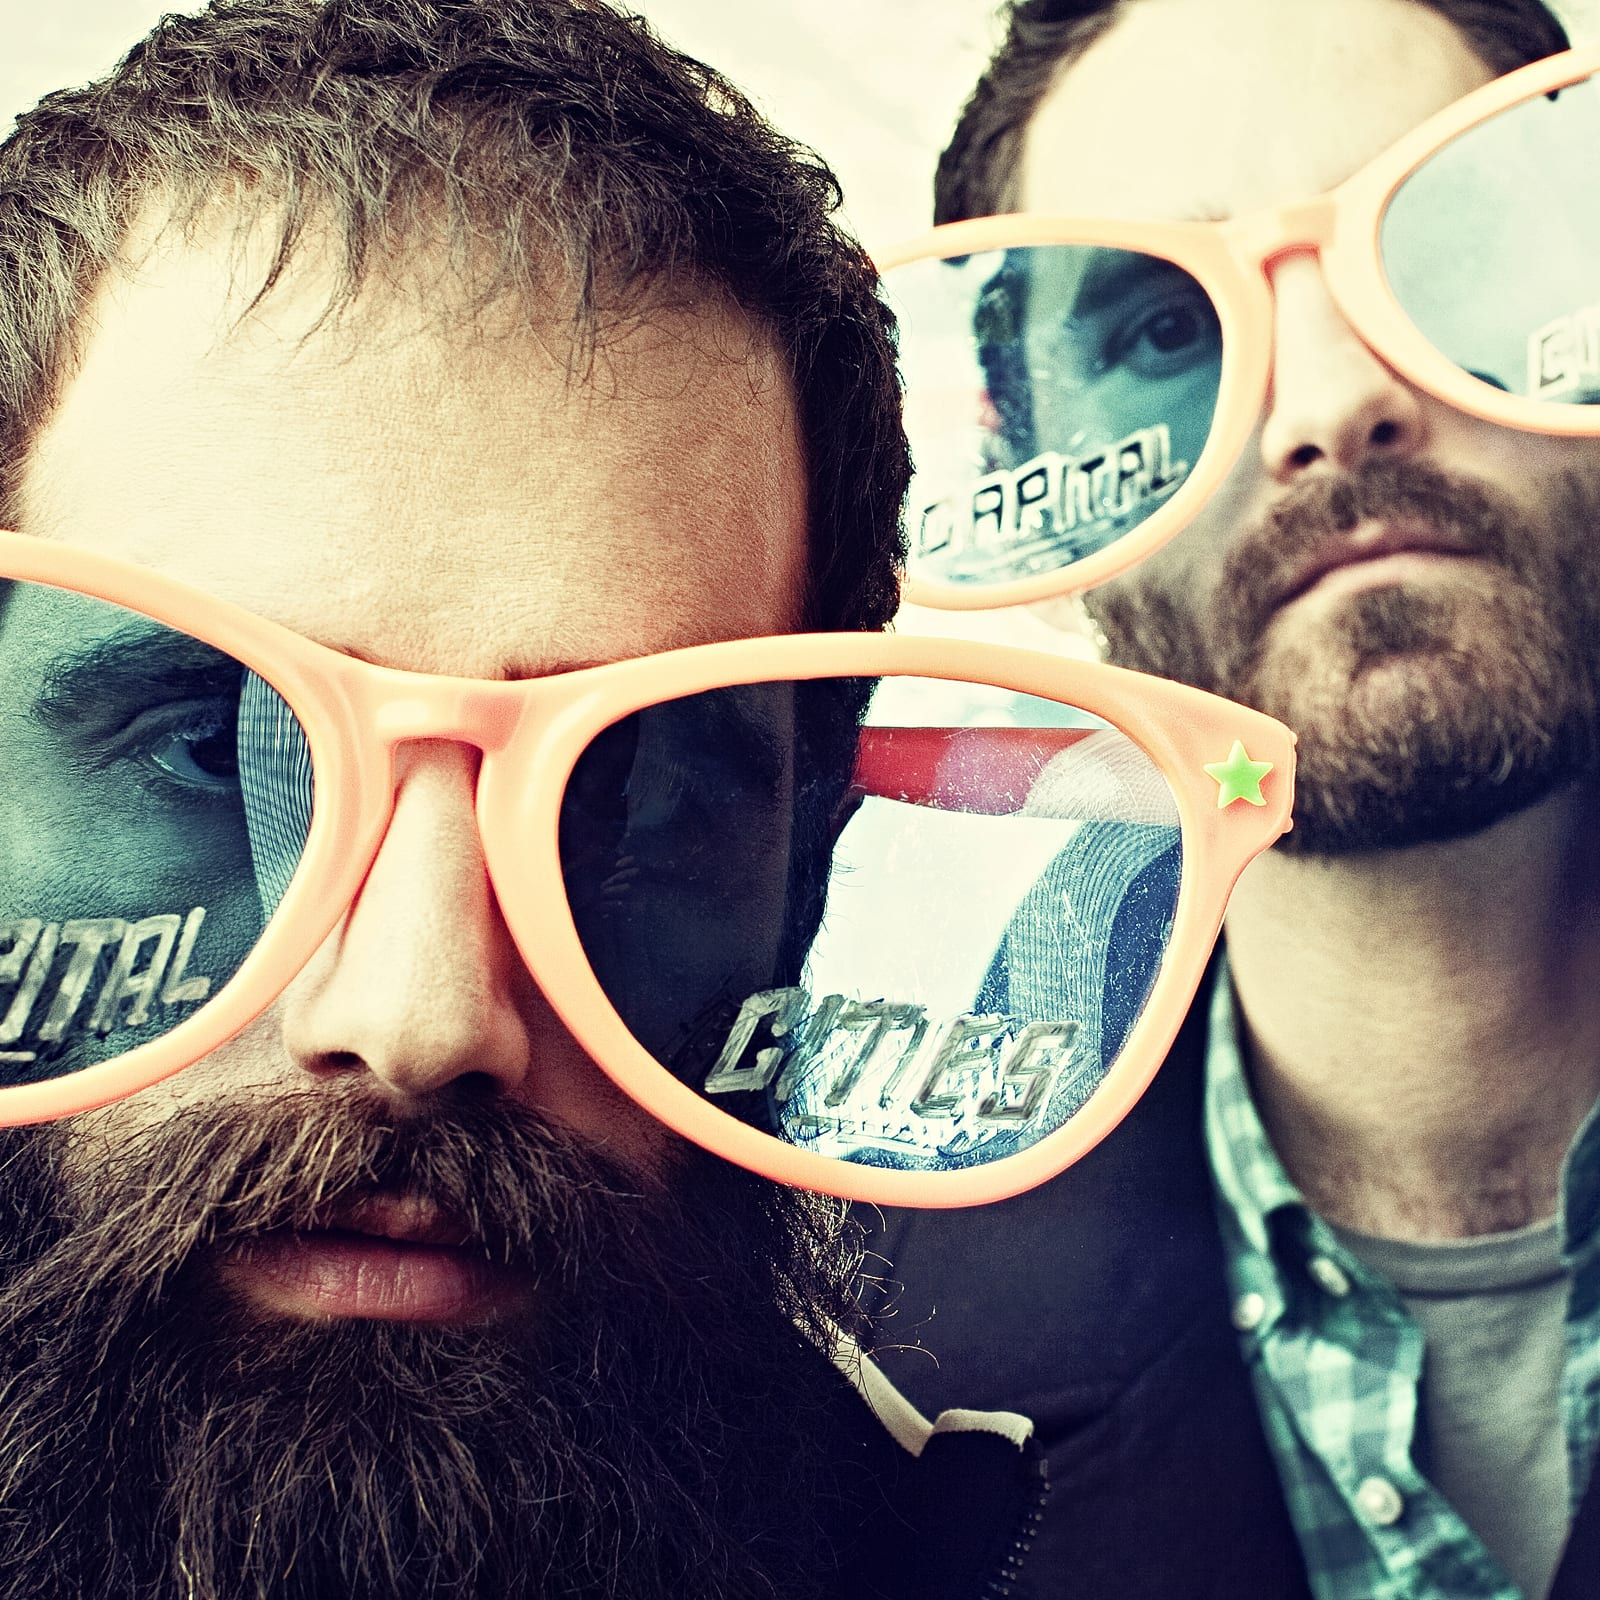 Capital Cities ep Cities Capital Cities ep